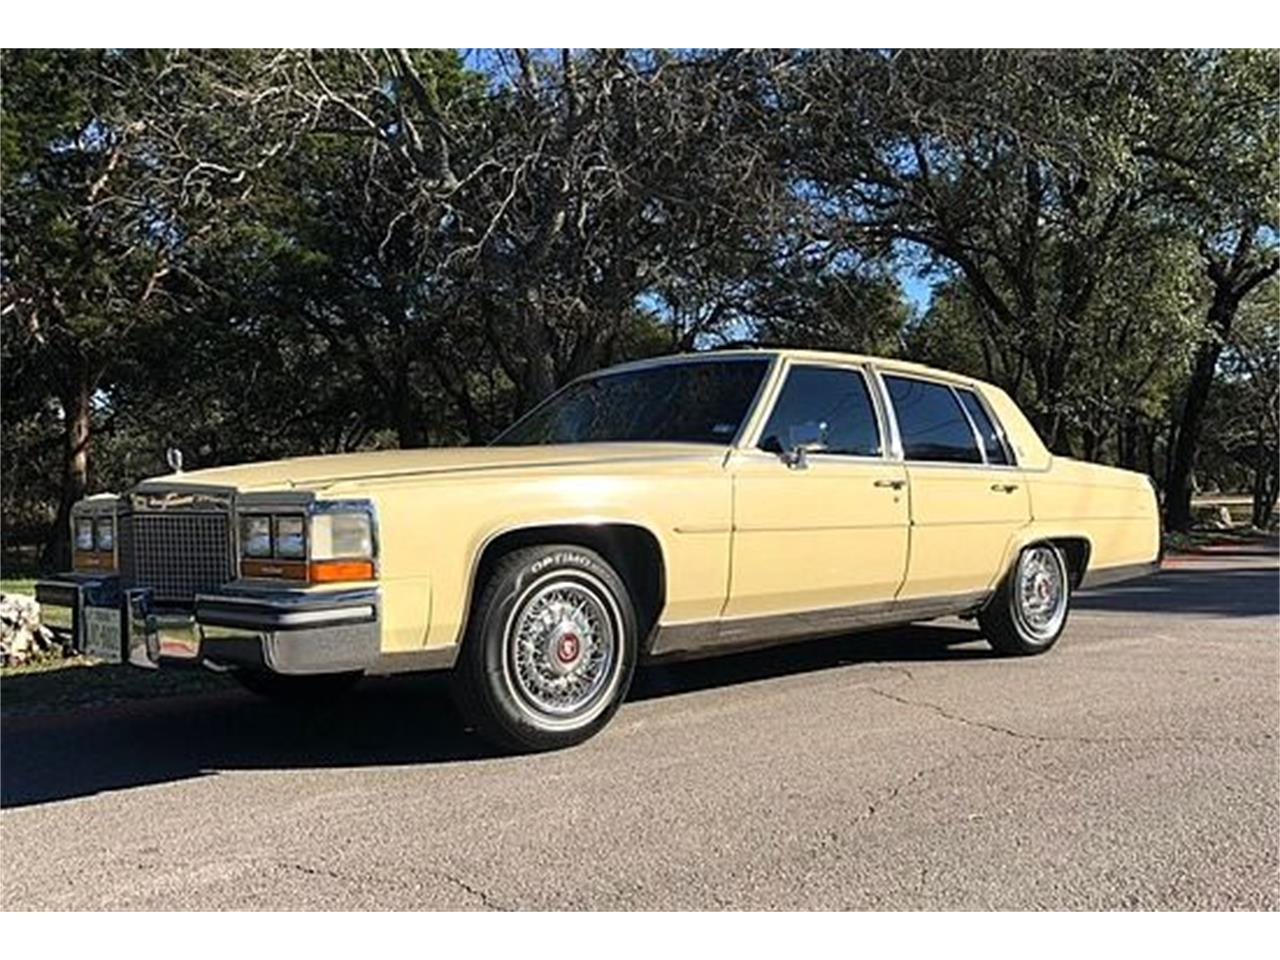 1987 Cadillac Fleetwood Brougham For Sale In Stratford Nj Classiccarsbay Com